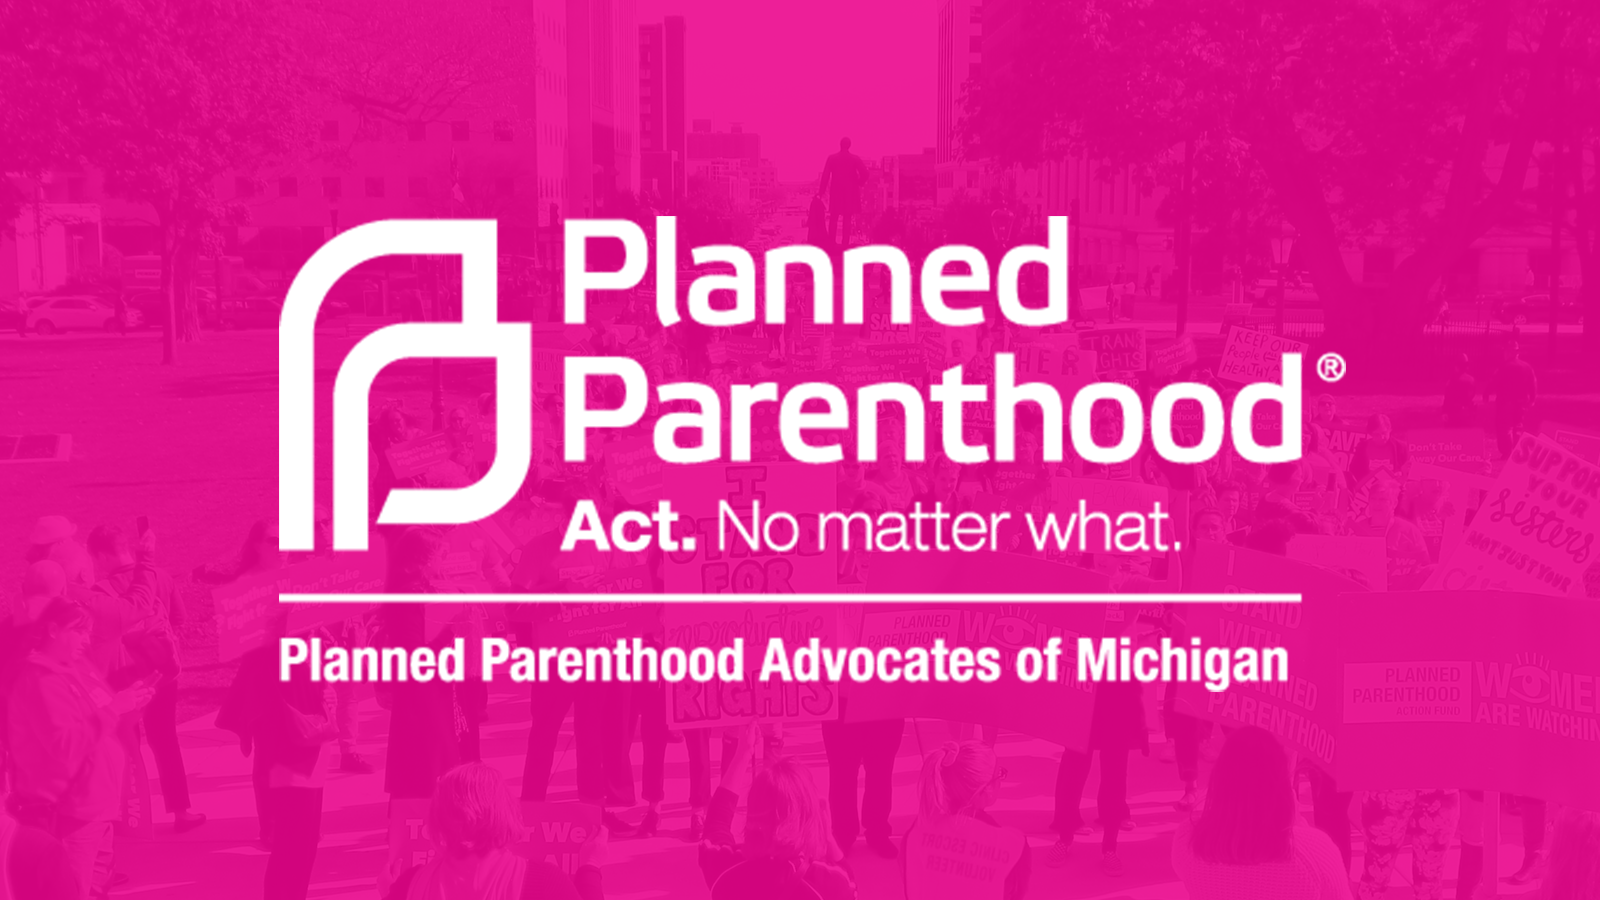 Planned Parenthood Advocates of Michigan.